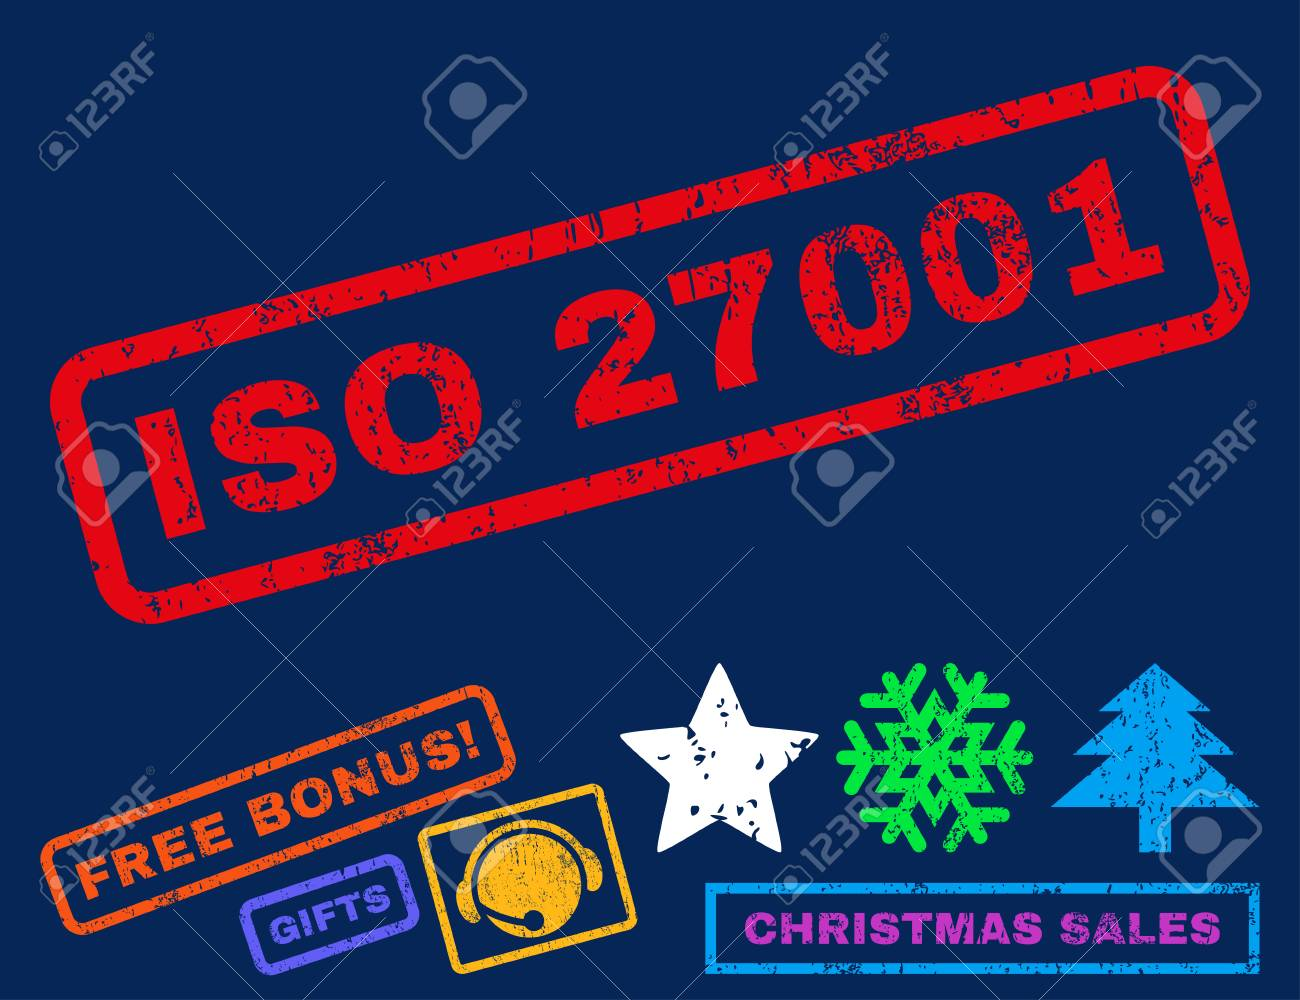 christmas symbols cool text wiring diagrams